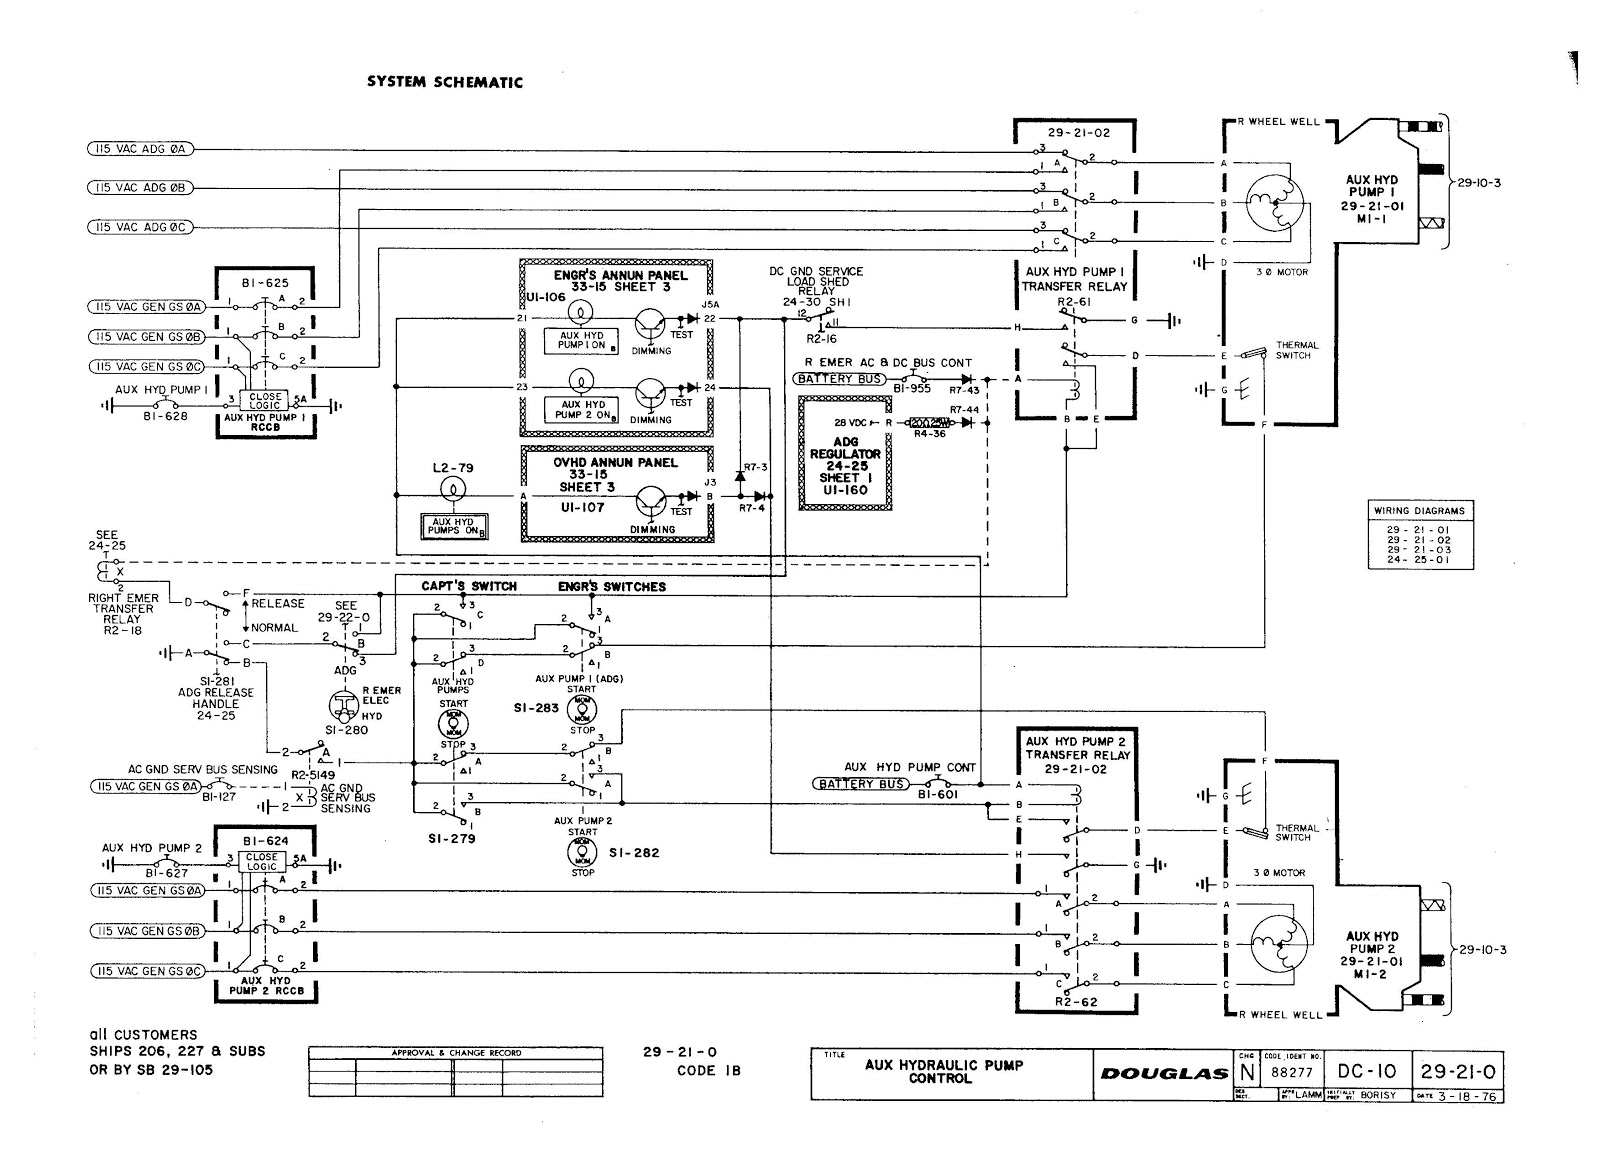 wiring schematic diagram wiring wiring diagrams online part 66 virtual aircraft wiring and schematic diagrams